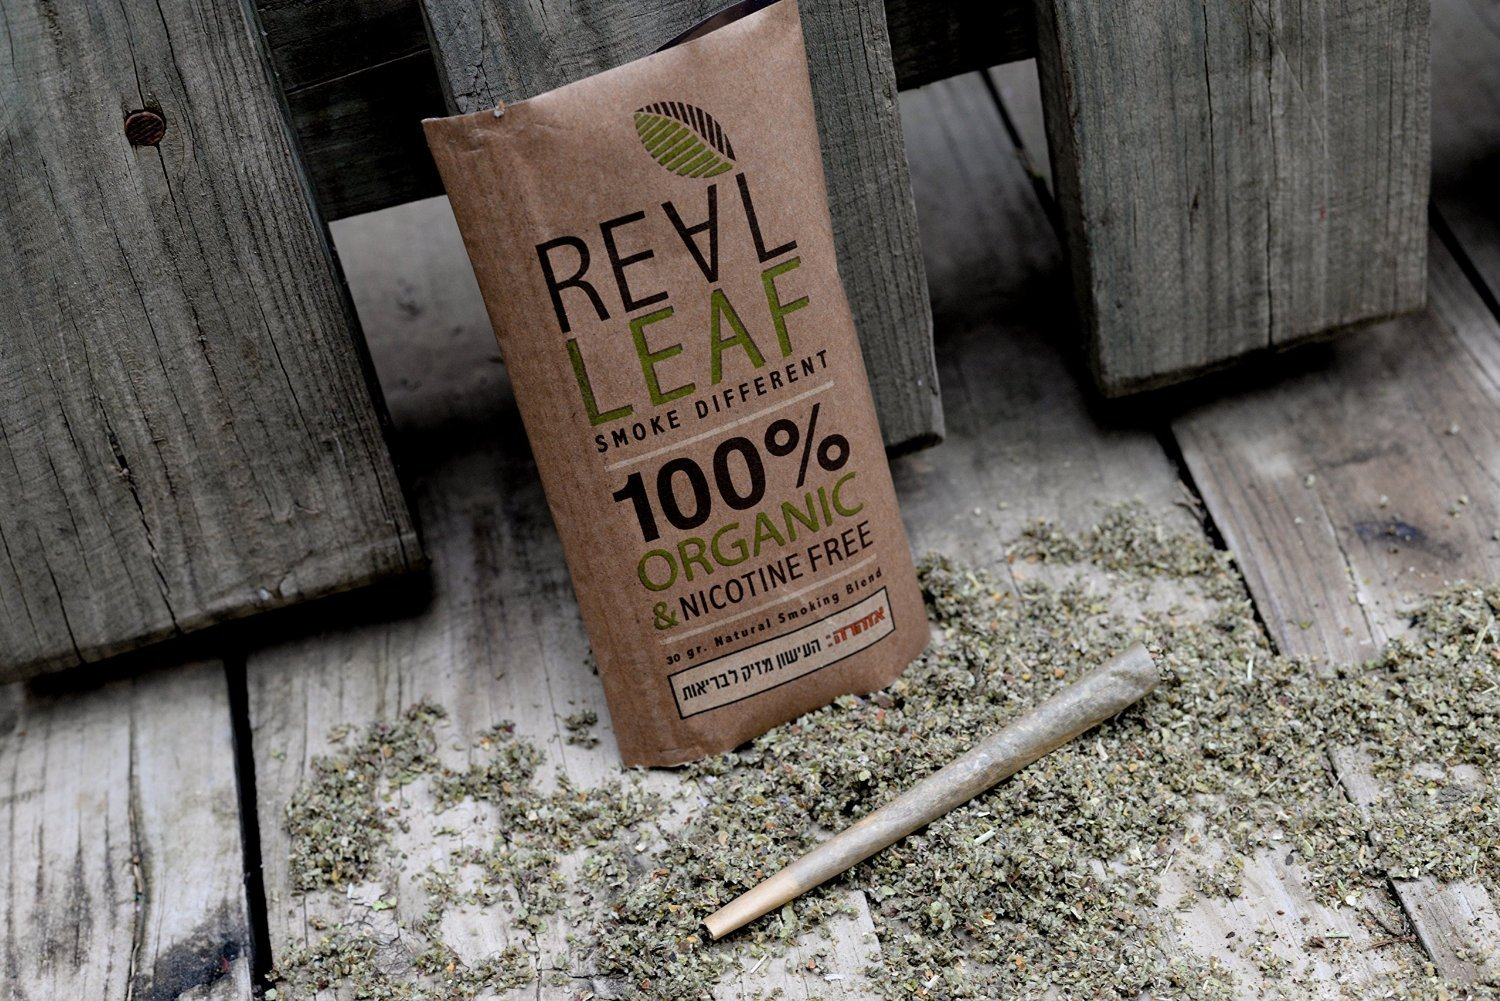 Organic Herbal Natural Smoking Mixture 30g 100% Nicotine & Tobacco Free, Rich, Aromatic, Delicate Aroma and Smooth natural taste Real Leaf Substitute